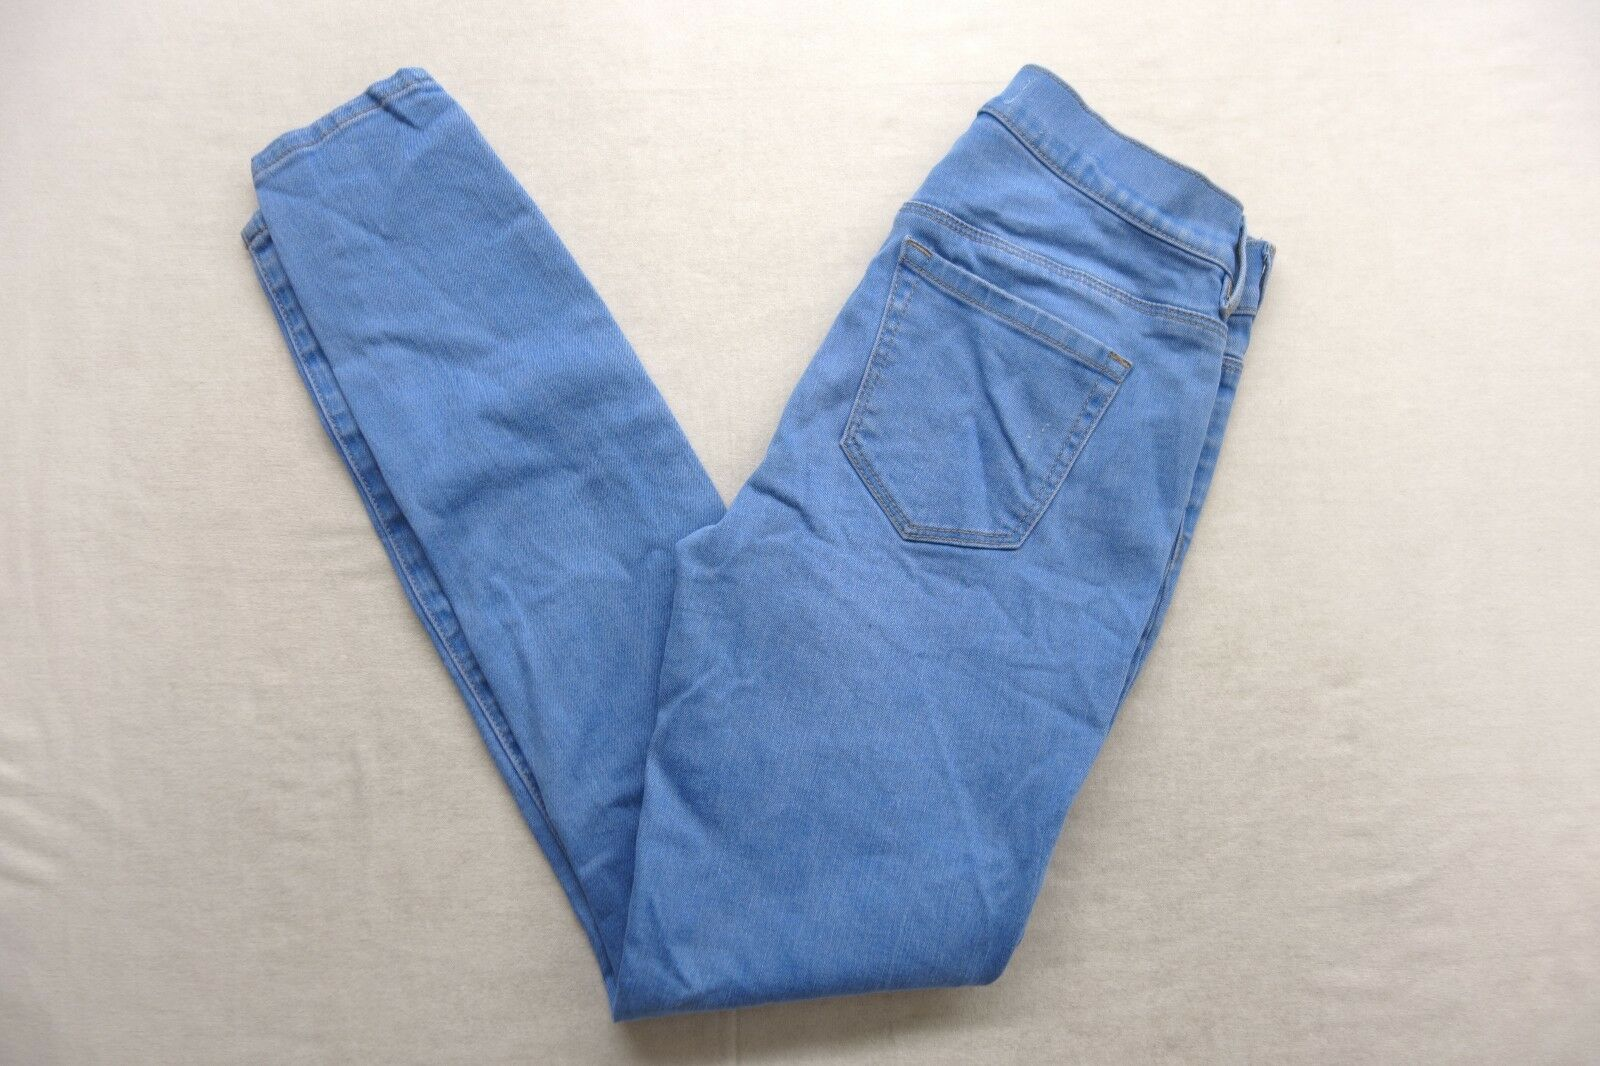 New Womens Pacsun Perfect Ankle Jegging Stretch Medium bluee Denim Jeans 25 x 29